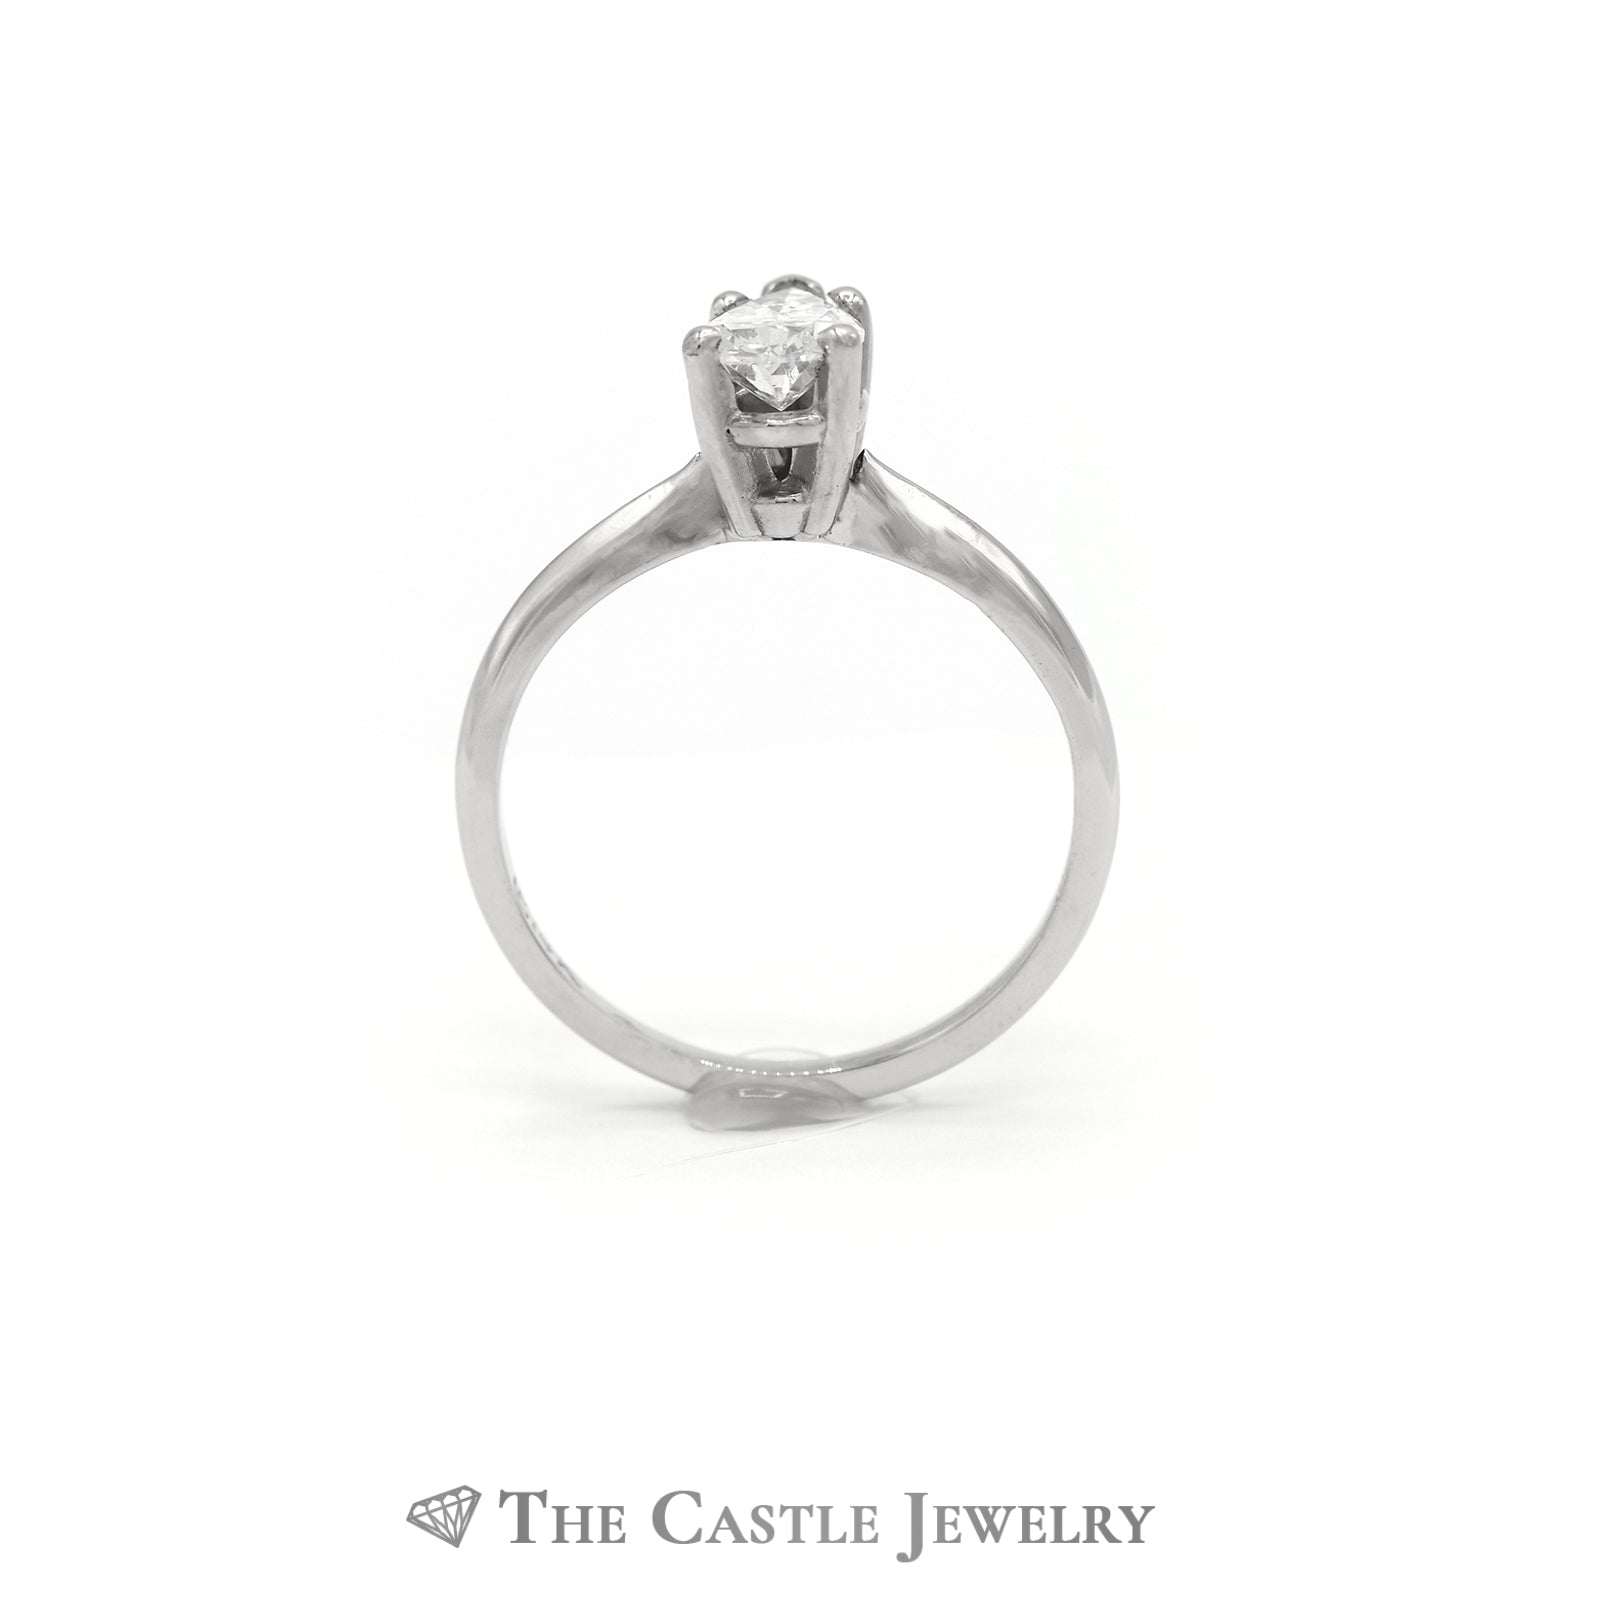 Pear Cut Diamond Solitaire Engagement Ring in 14K White Gold-1